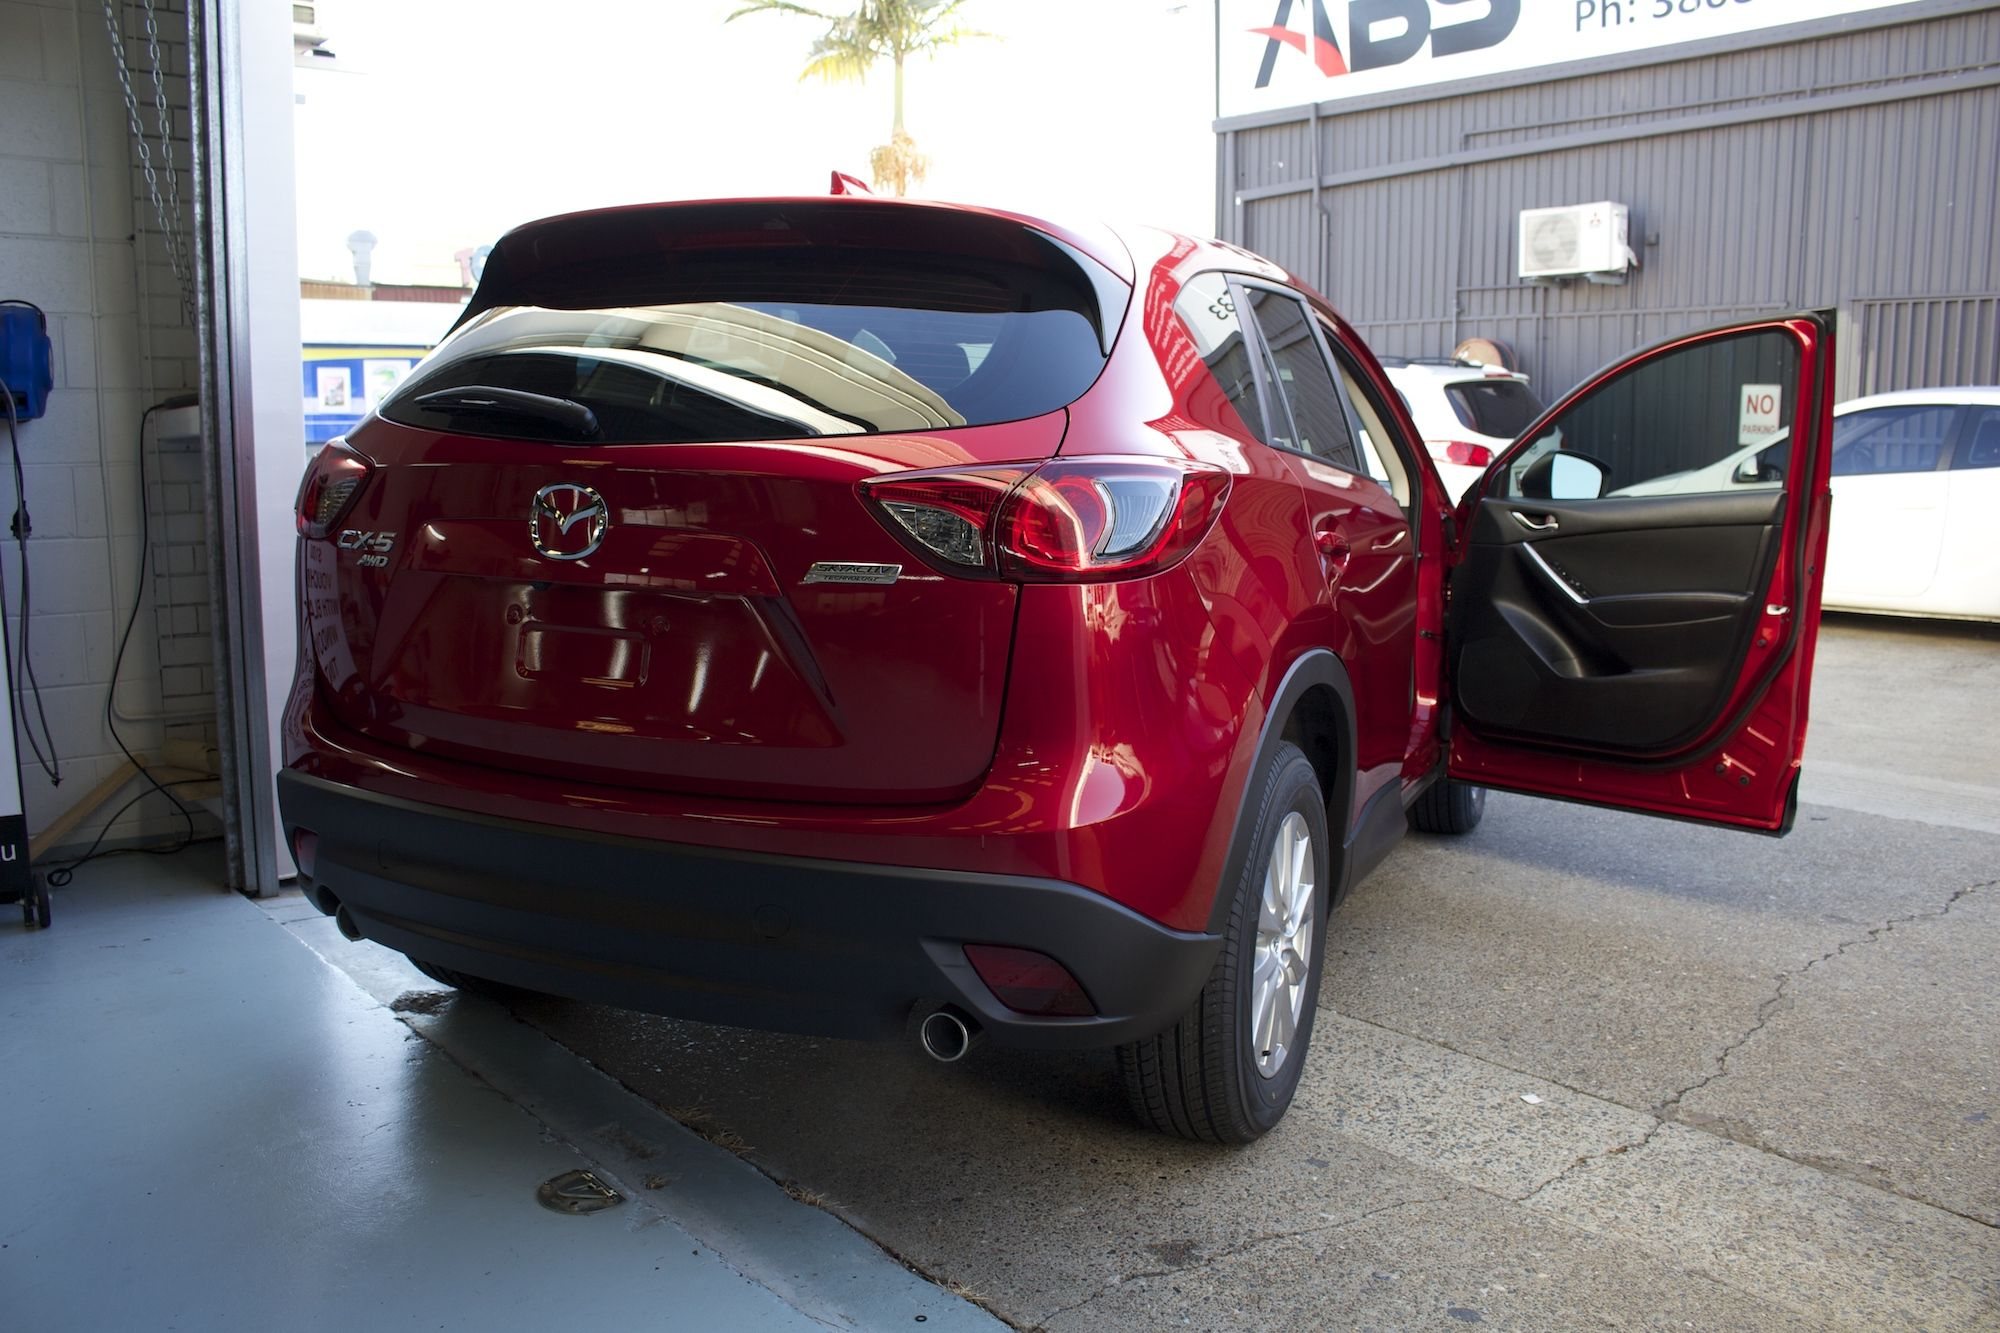 Red Window Tint >> Dark Car Window Tint Installed On A Red Mazda For Top